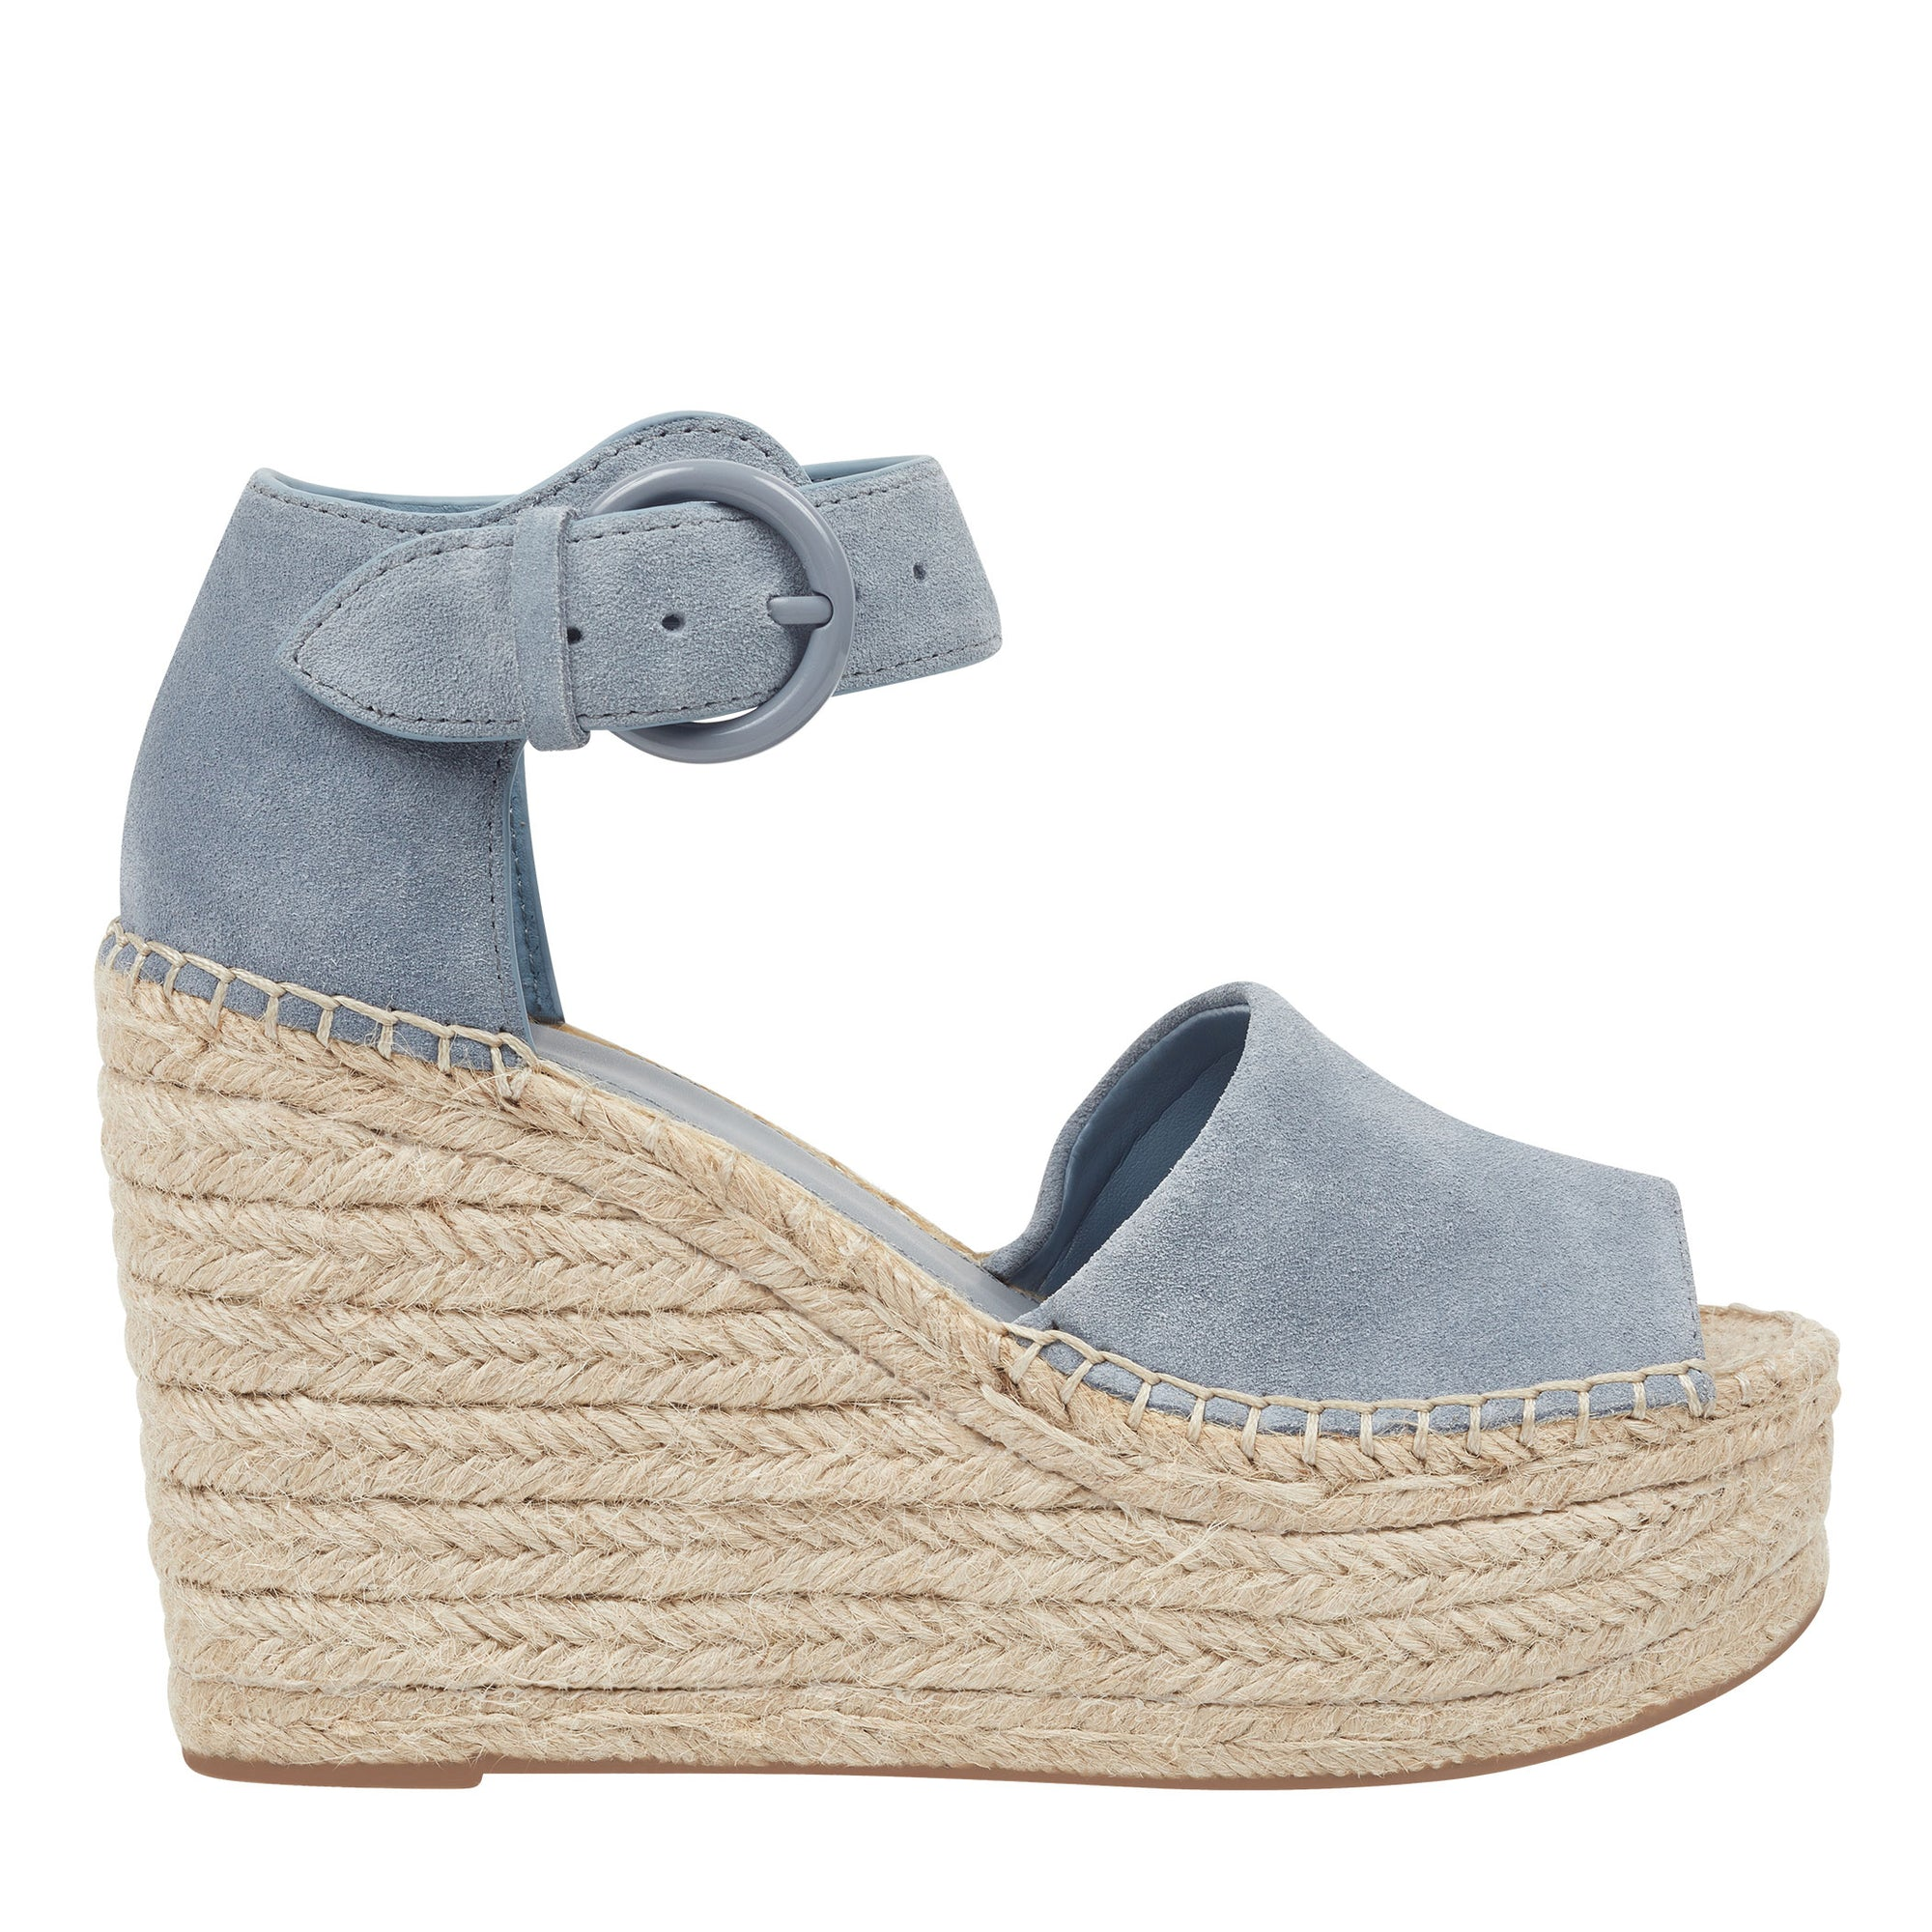 alida-espadrille-wedge-sandal-in-light-blue-suede